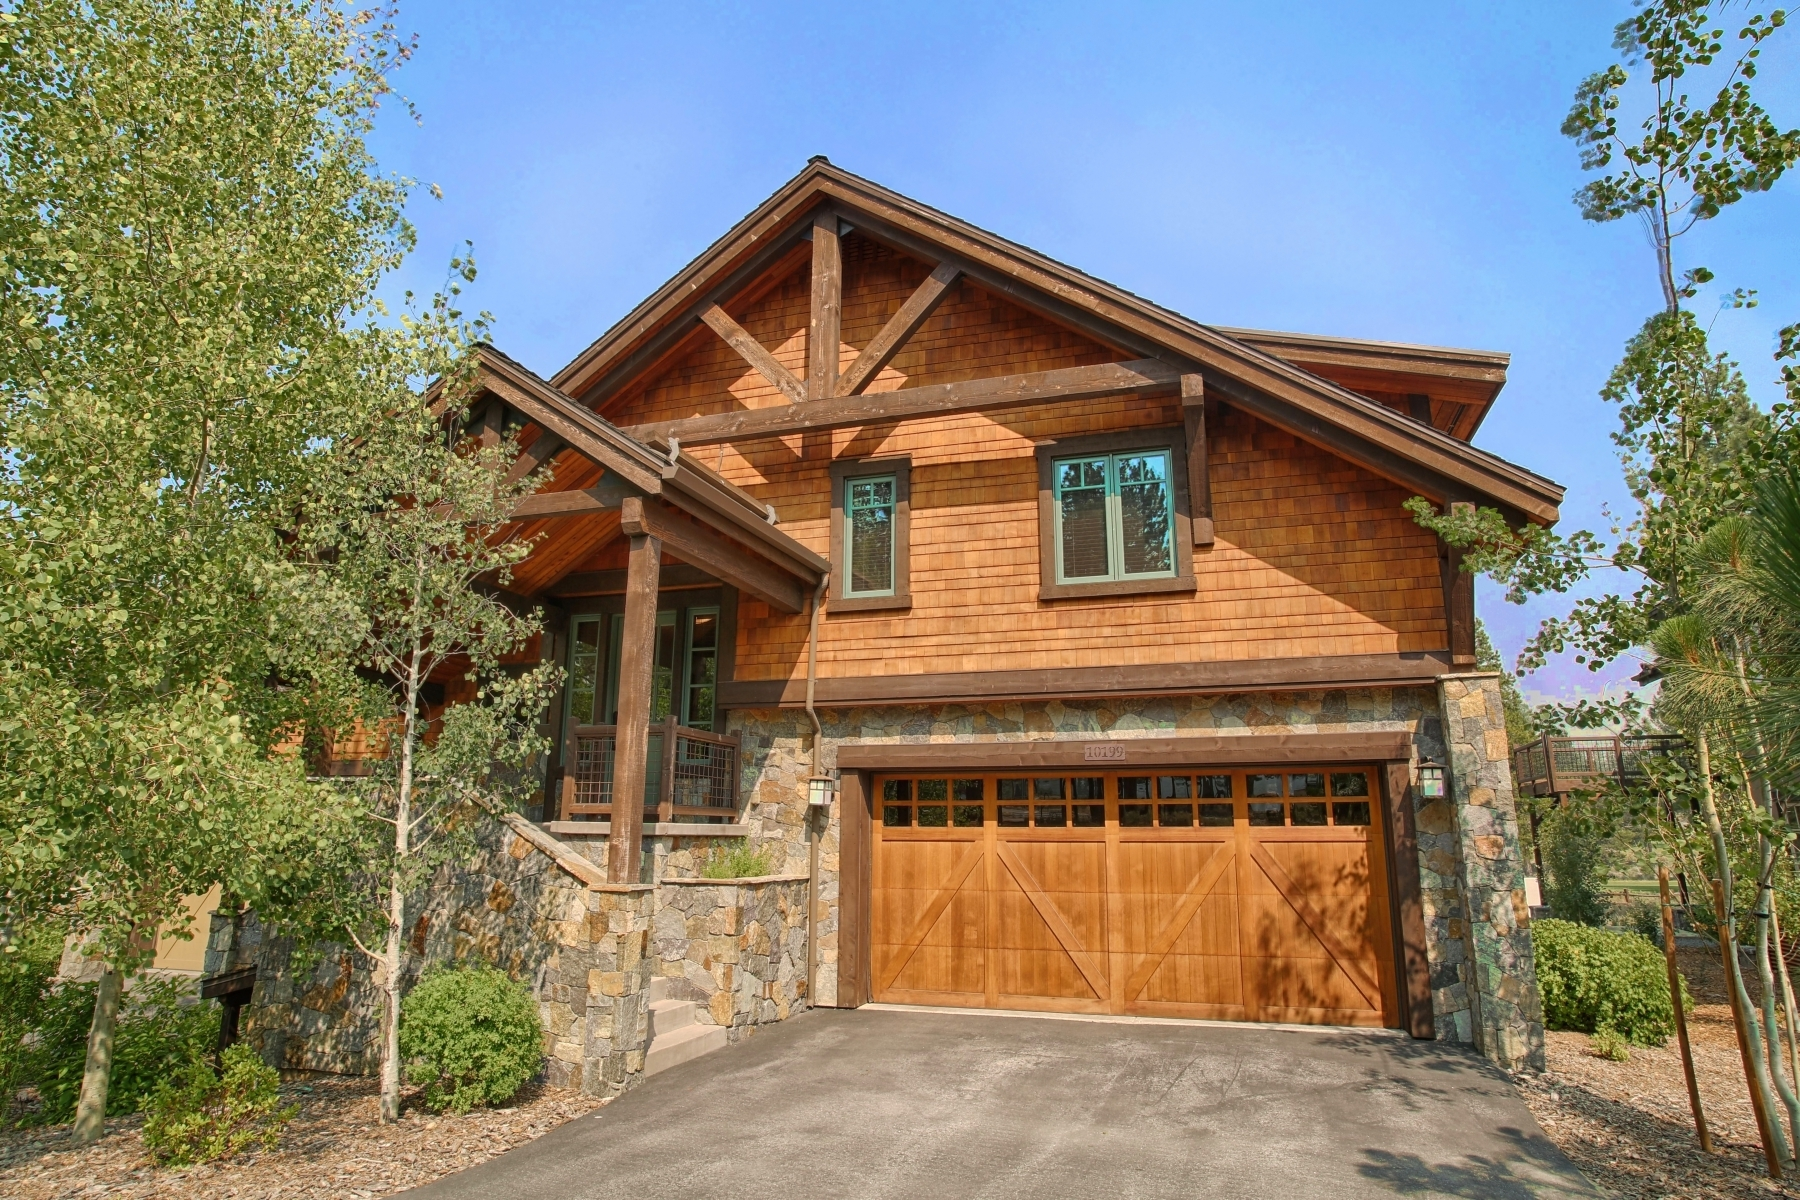 Property for Active at 10199 Annies Loop #13, Truckee, CA 96161 10199 Annies Loop #13 Truckee, California 96161 United States